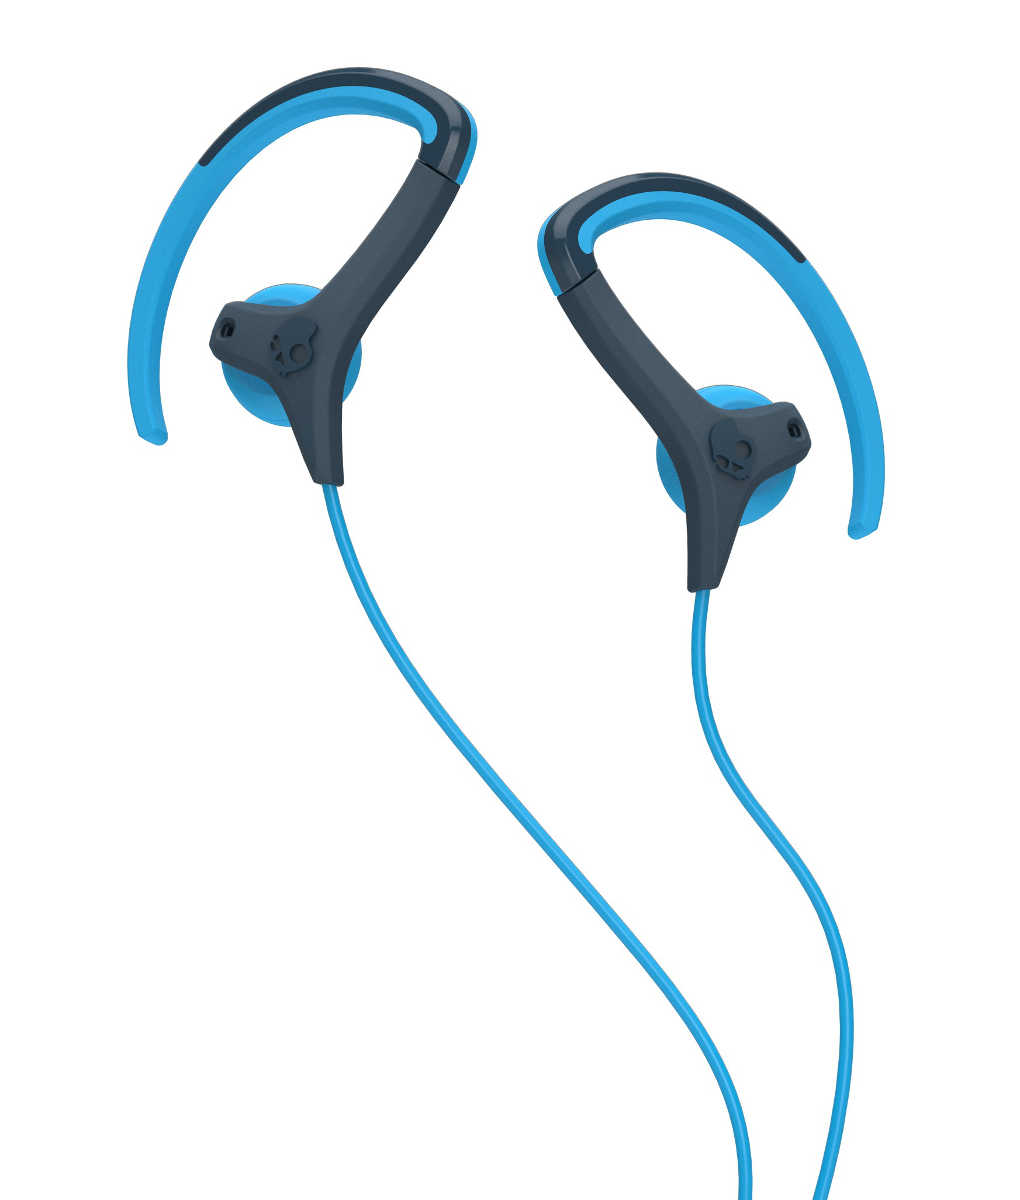 Earbuds blue skullcandy - yellow earbuds blue cord